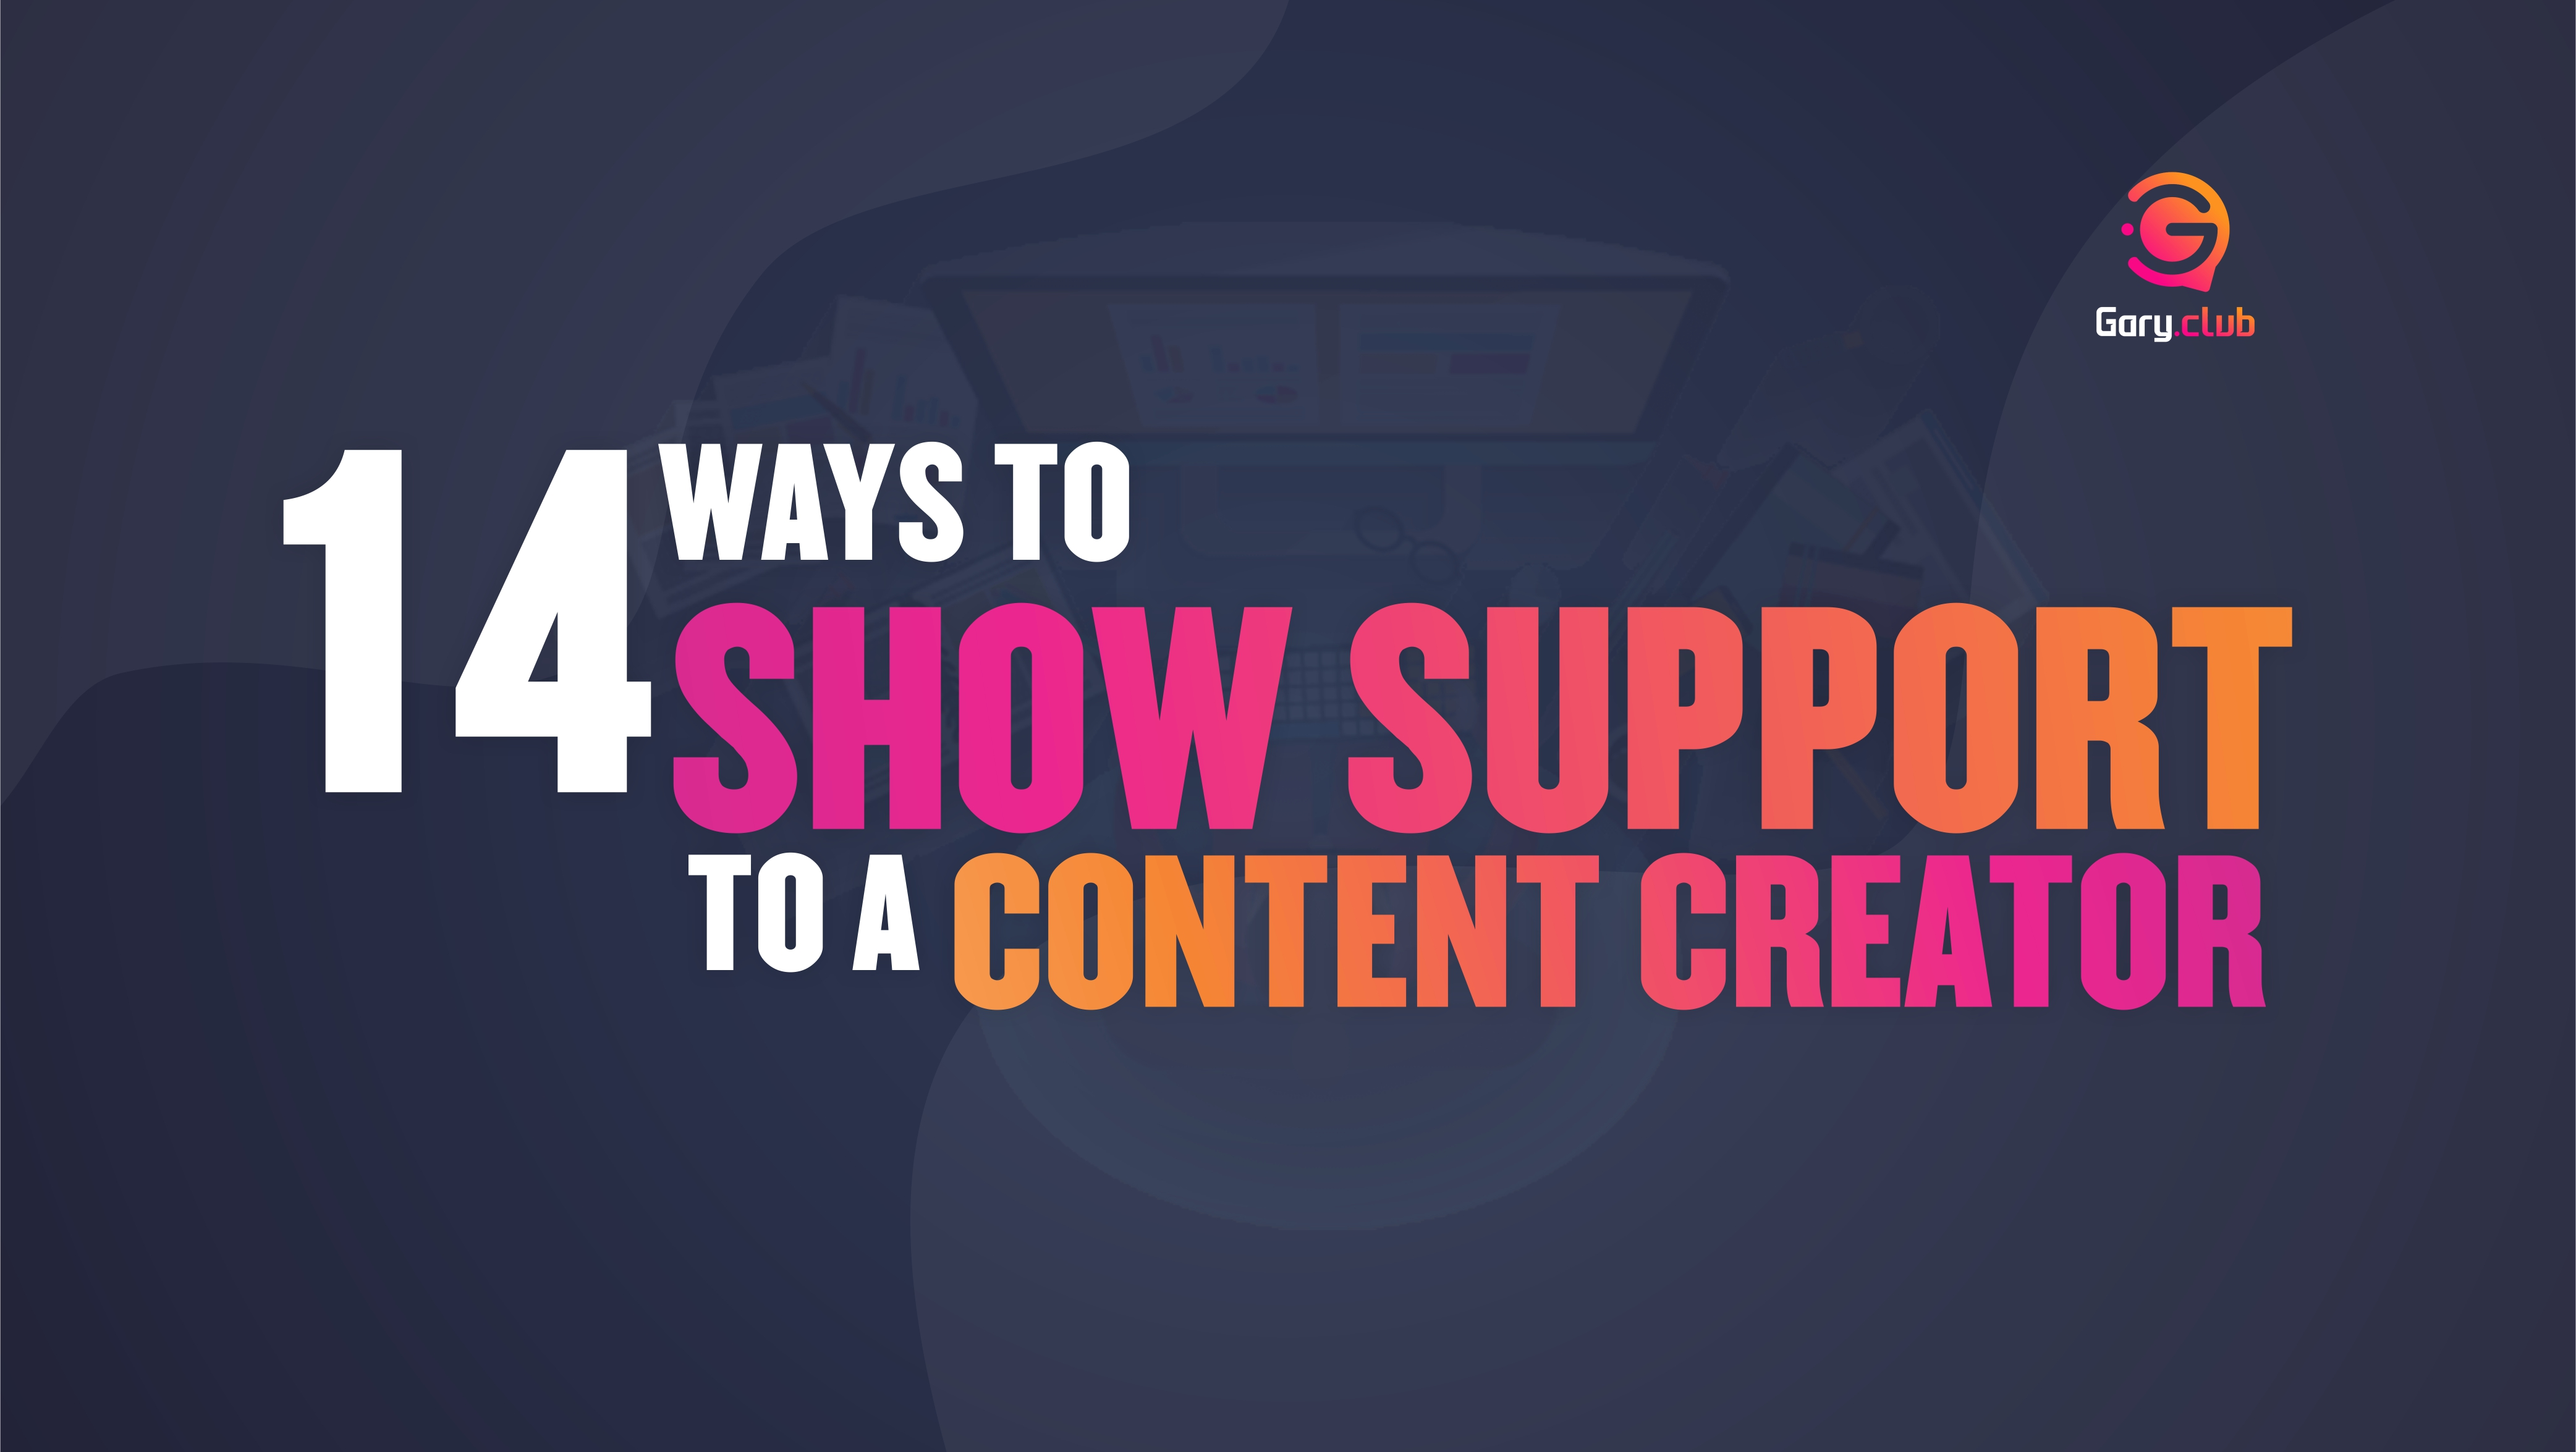 14 way to show Support to a content creator img (1)